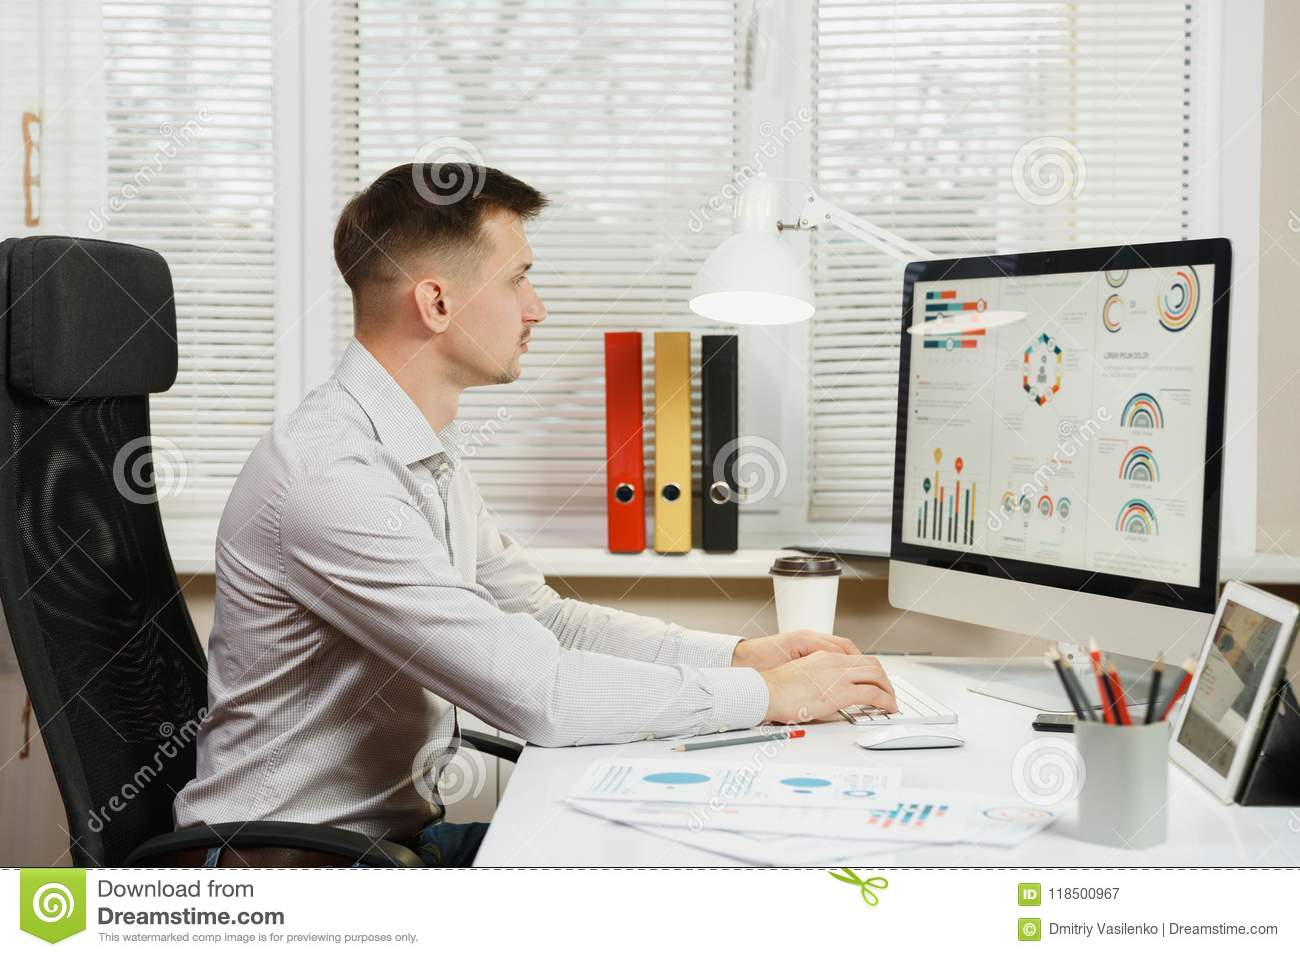 Serious and engrossed business man in shirt sitting at the desk, working at computer with modern monitor. Manager or worker.